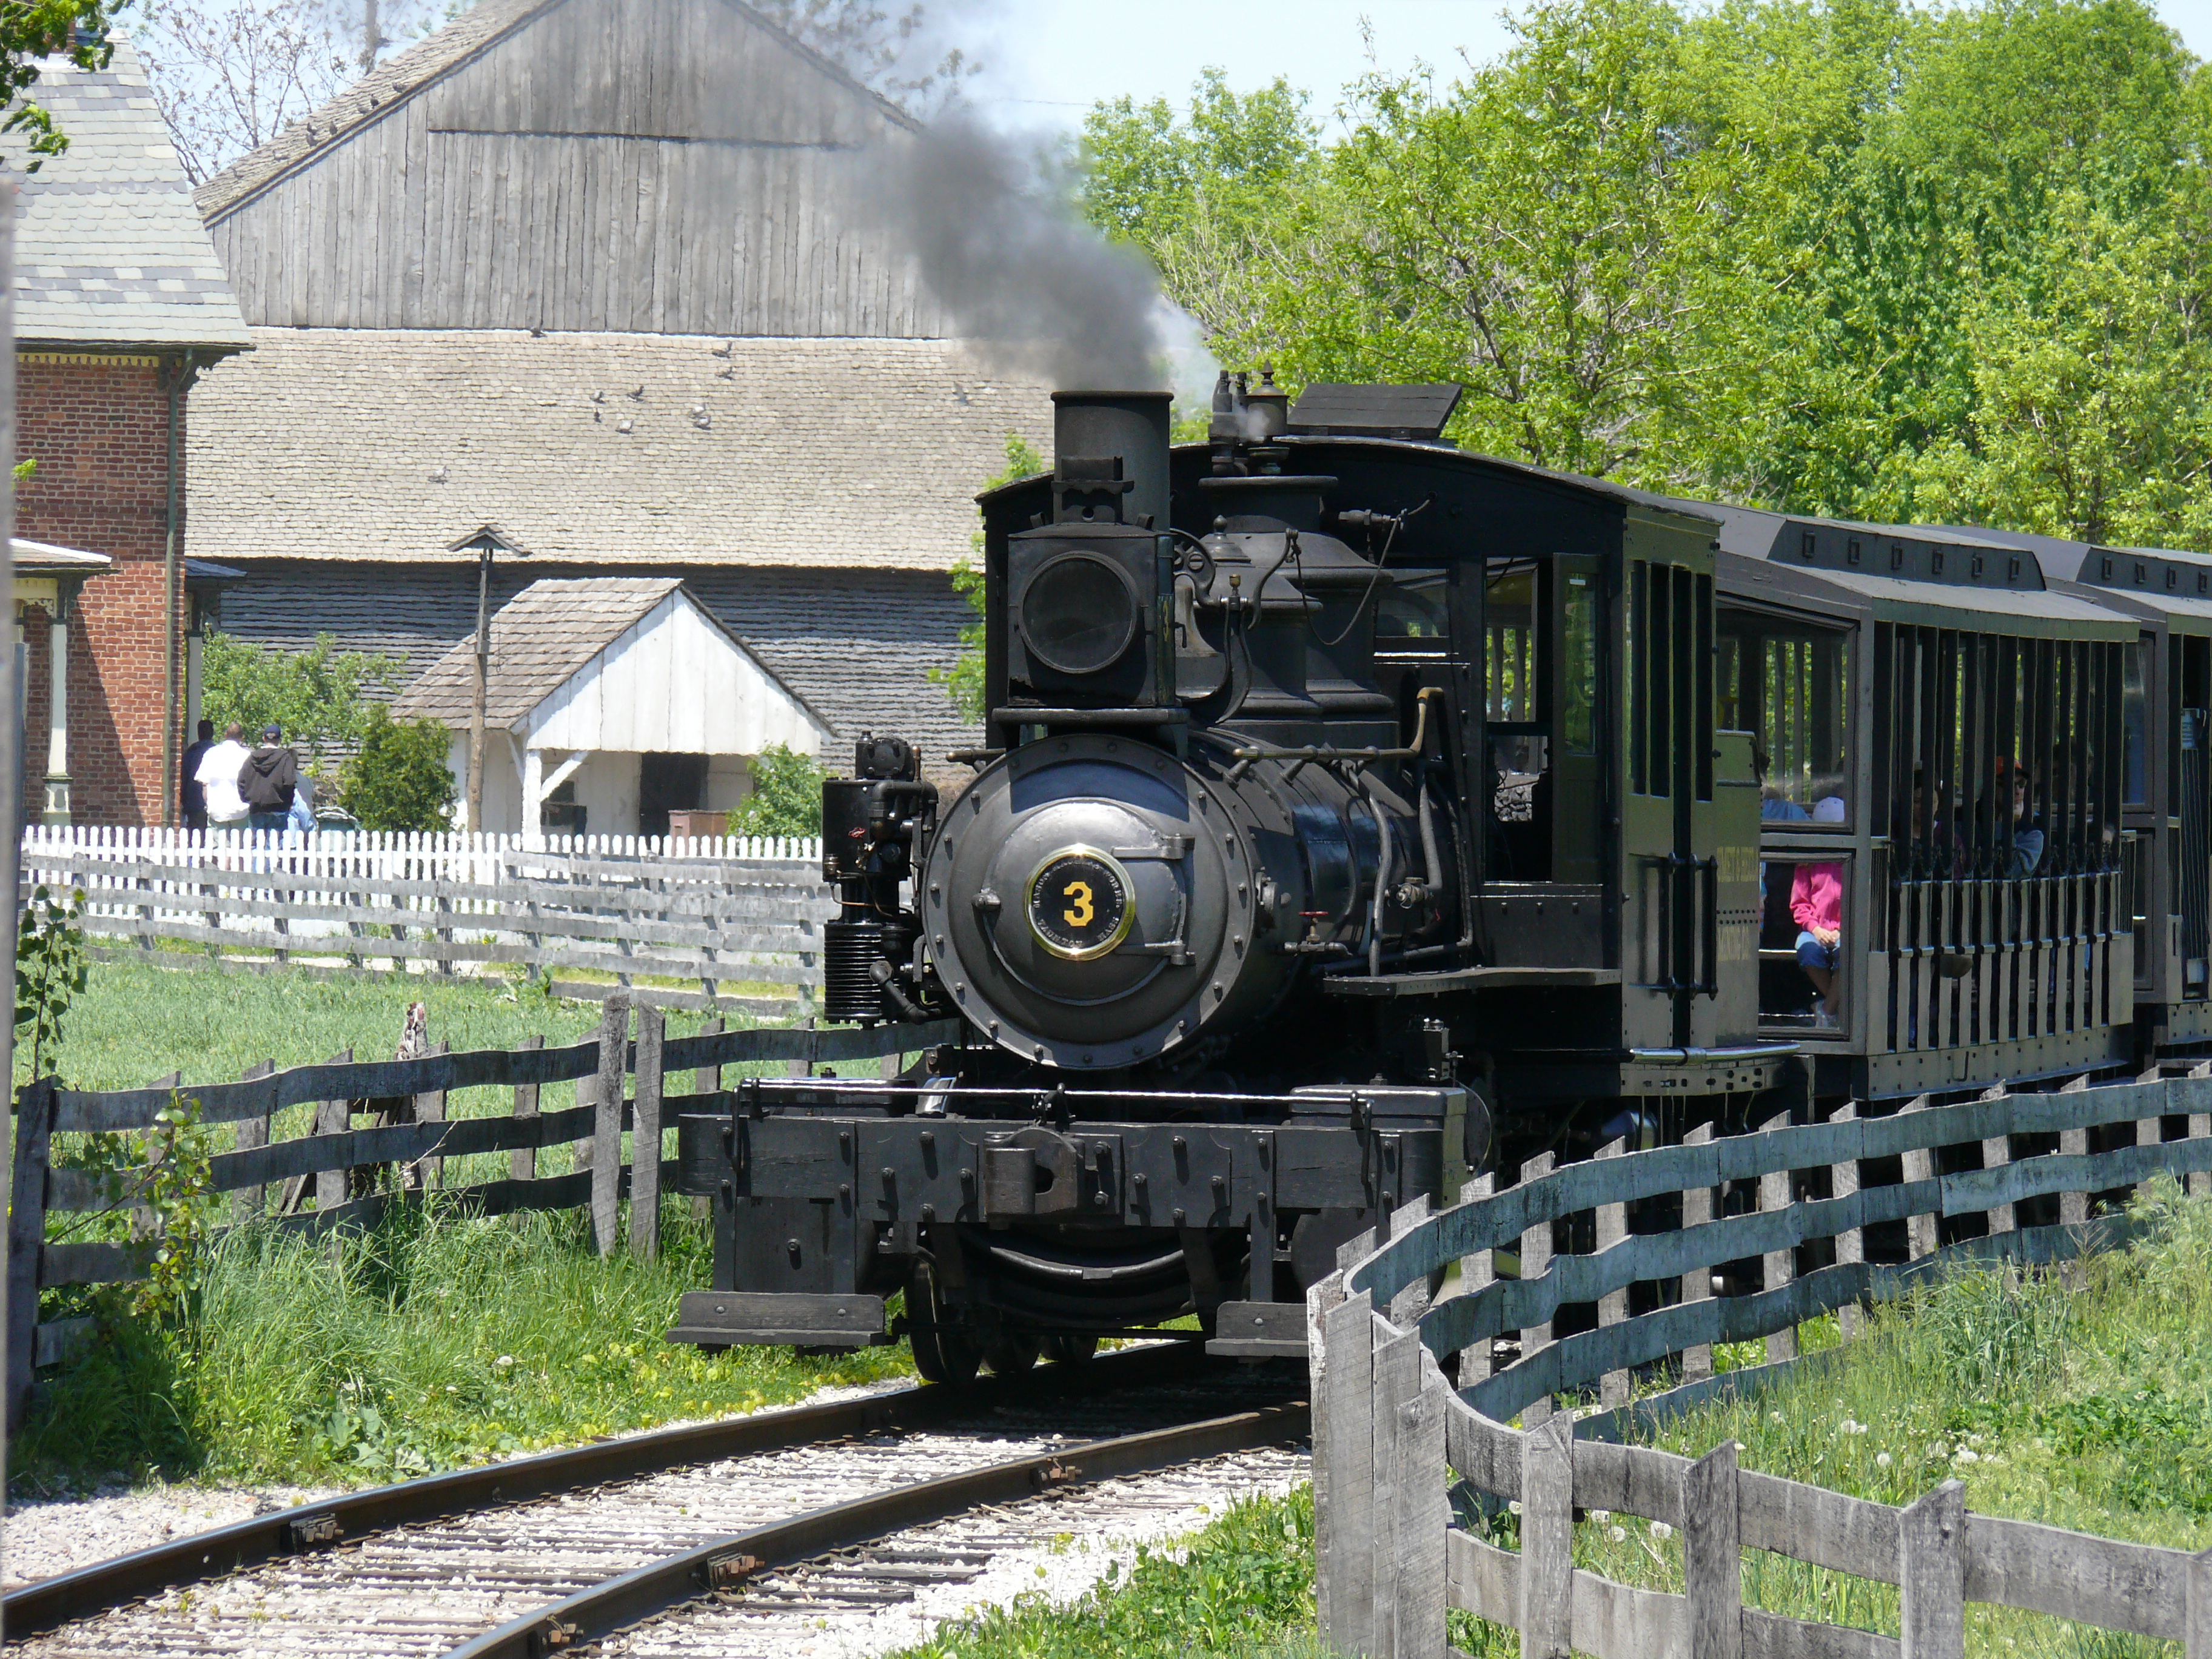 File:Oldest working steam engine in US - panoramio.jpg - Wikimedia ...